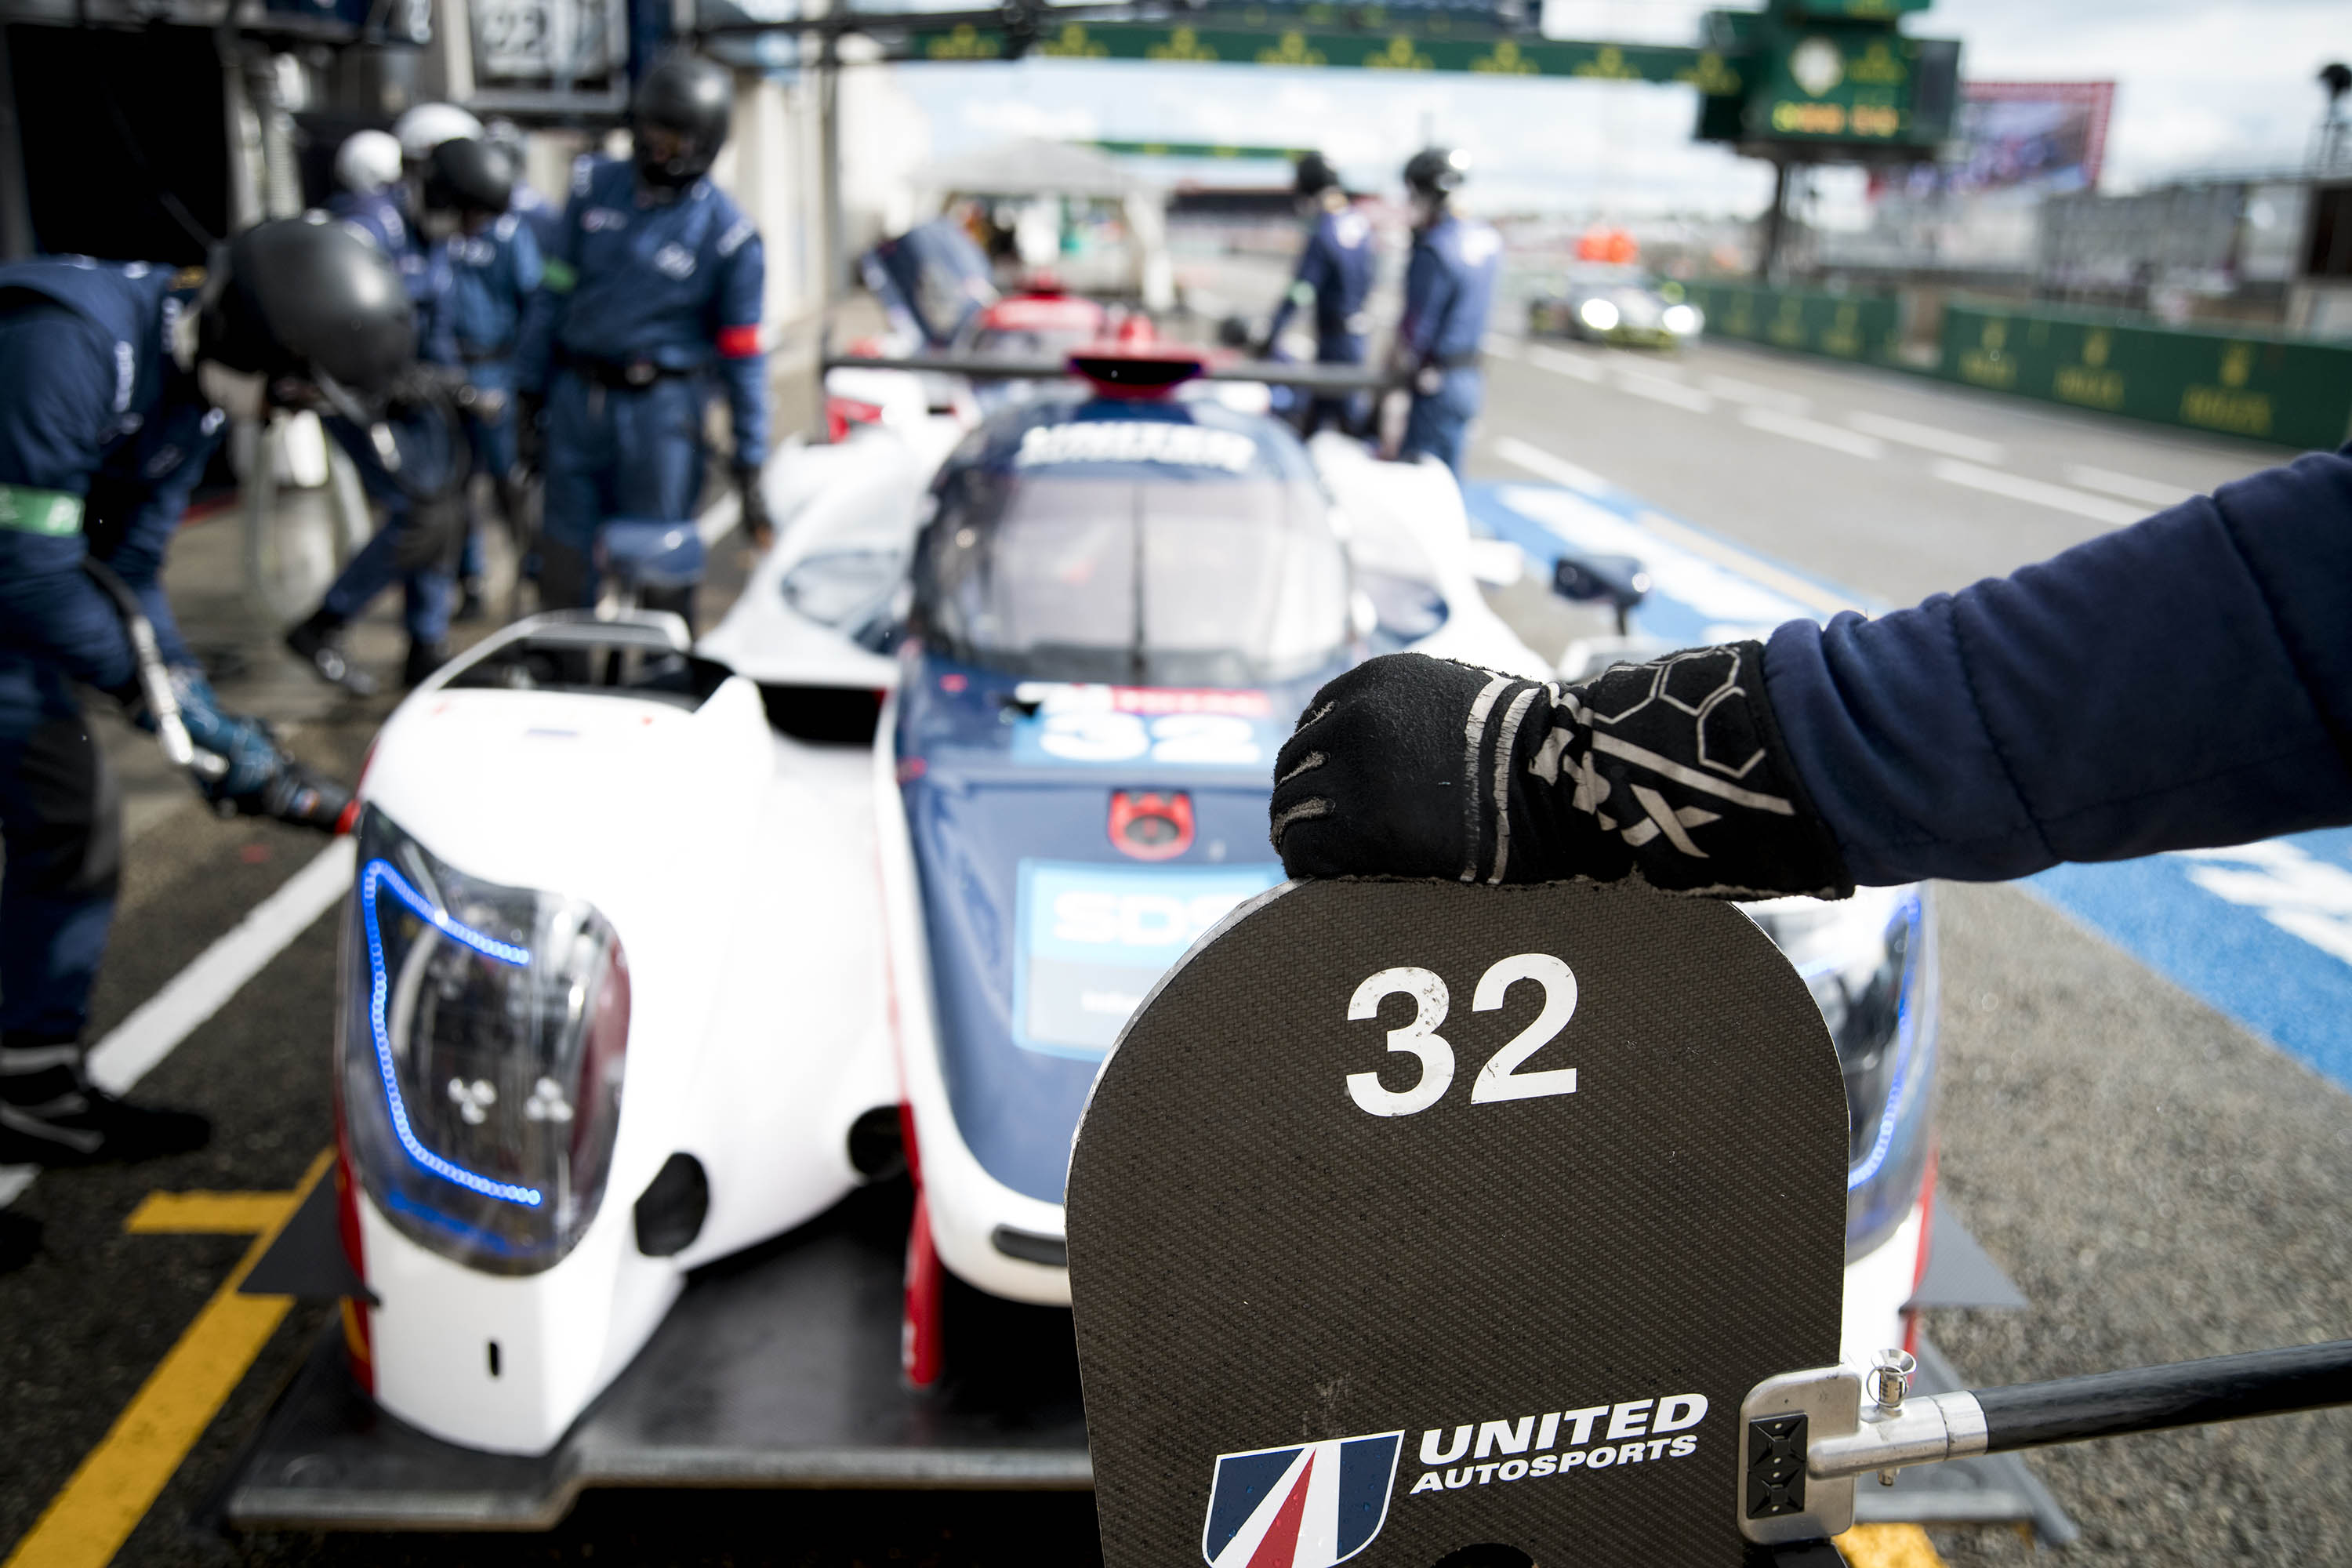 MRS_United32_LeMans2019_02019